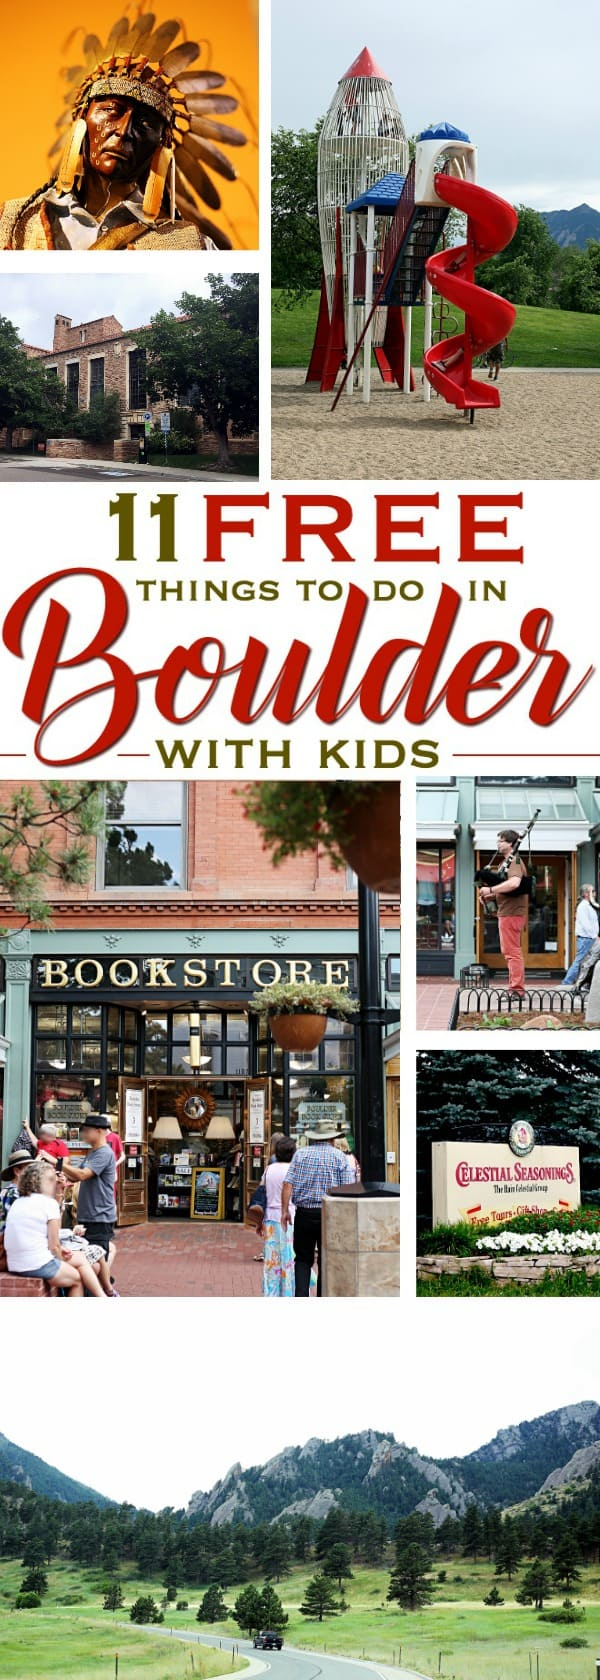 Free Things to Do in Boulder with the Kids #RoadTripOil (AD)